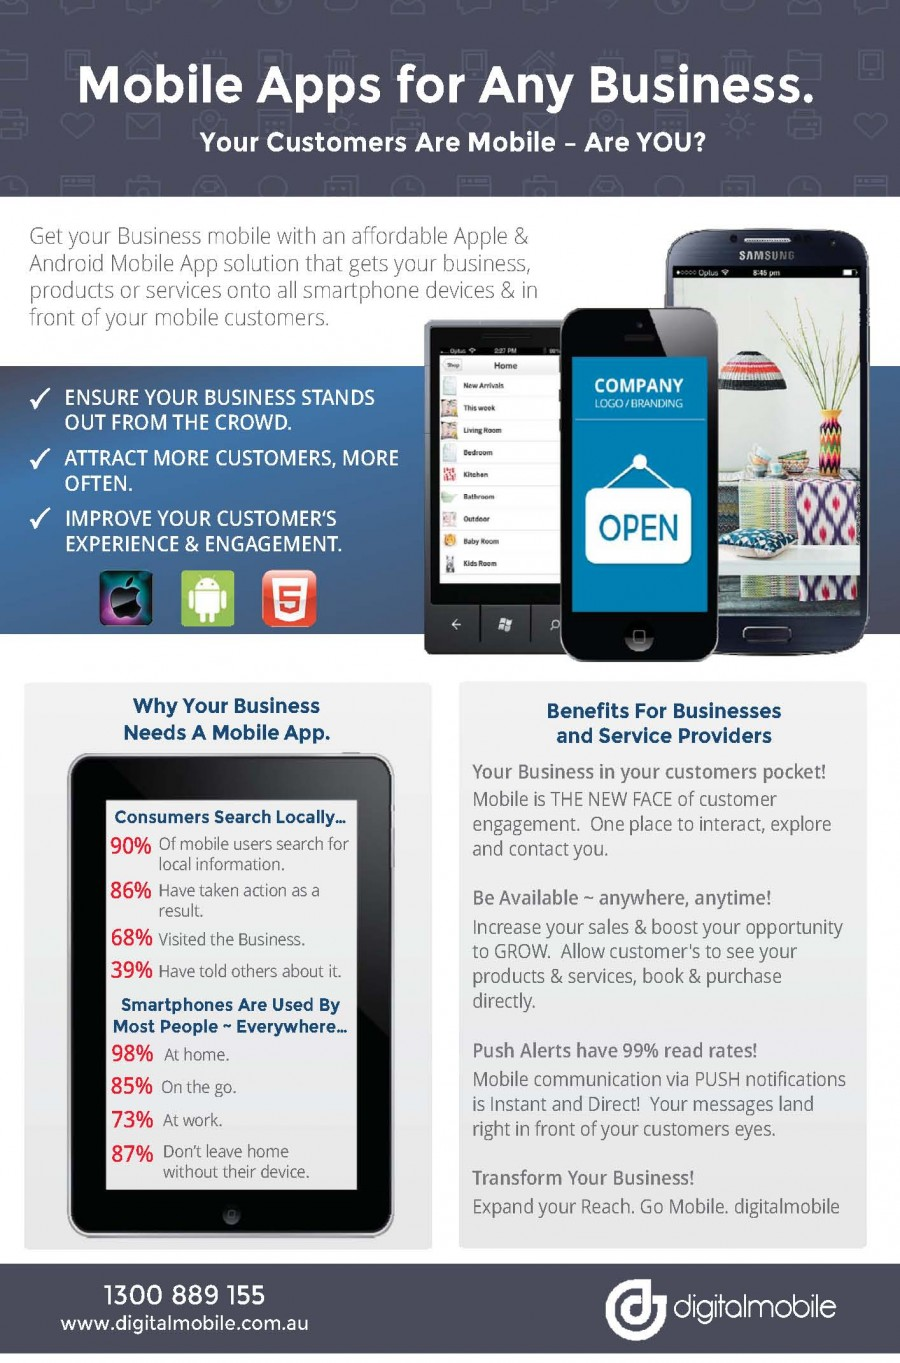 digitalmobile_Mobile Apps2014_ (1)_Page_1